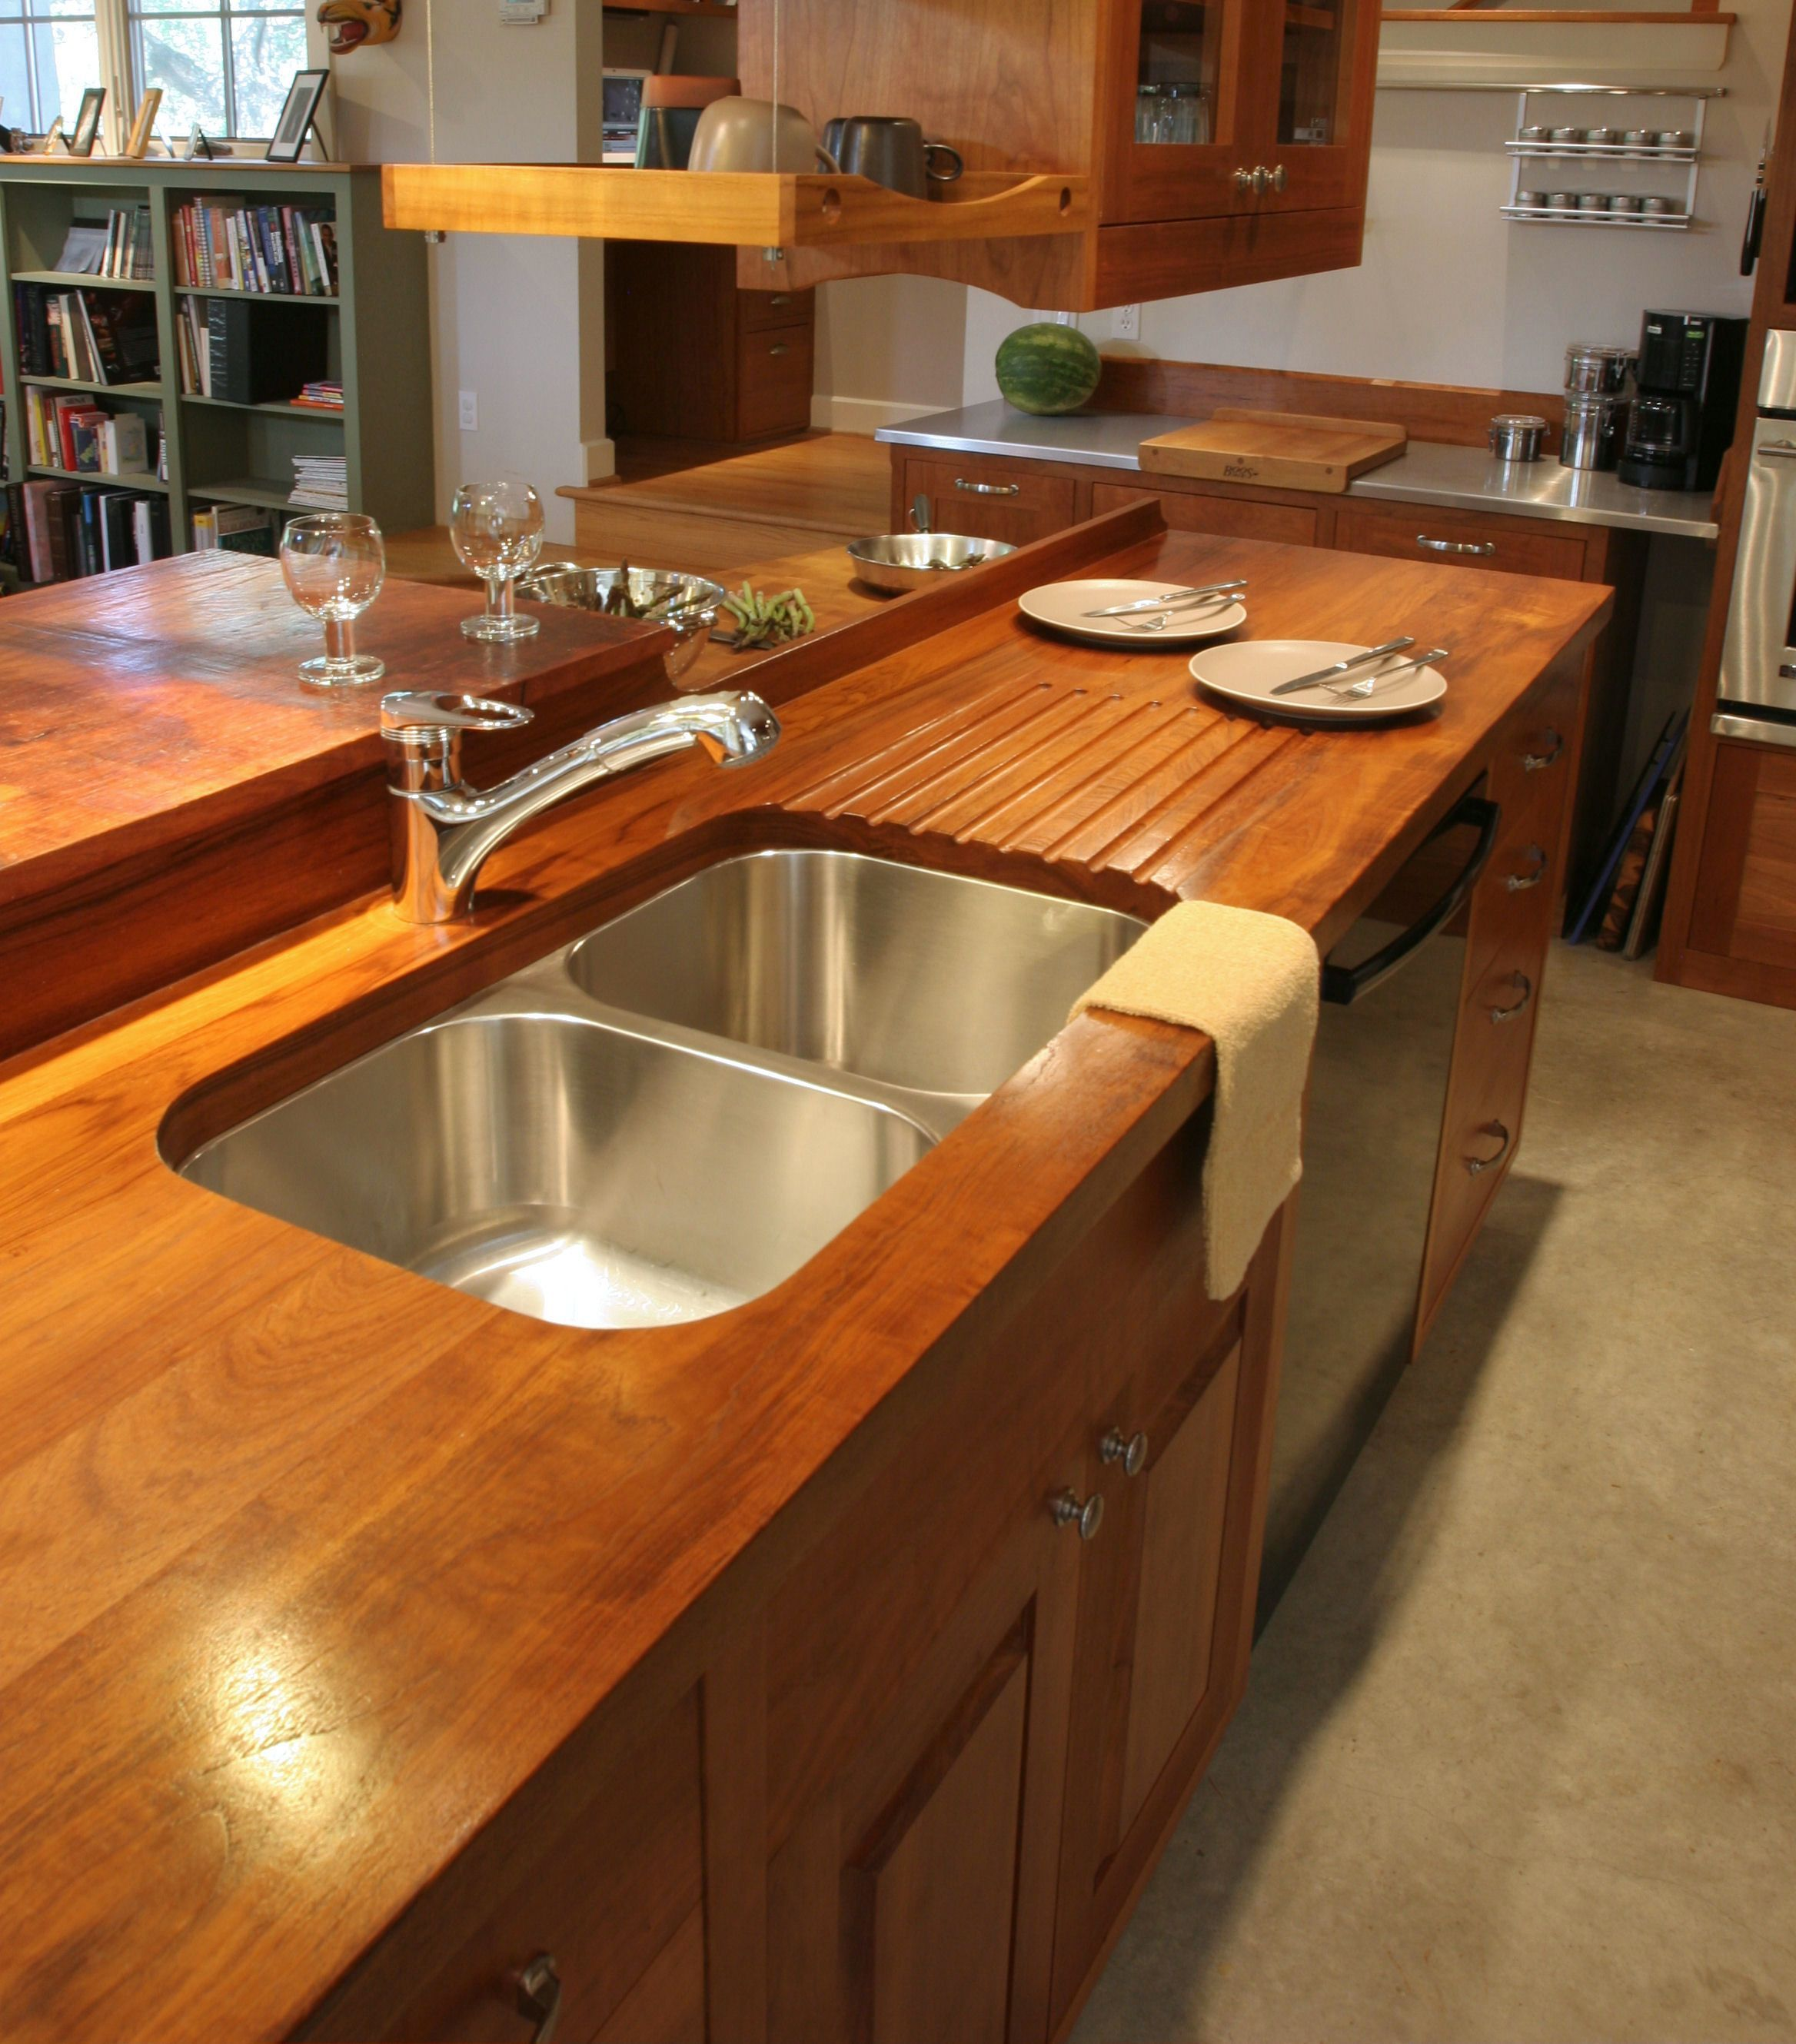 Face Grain Teak Countertop With Undermount Sink Sloping